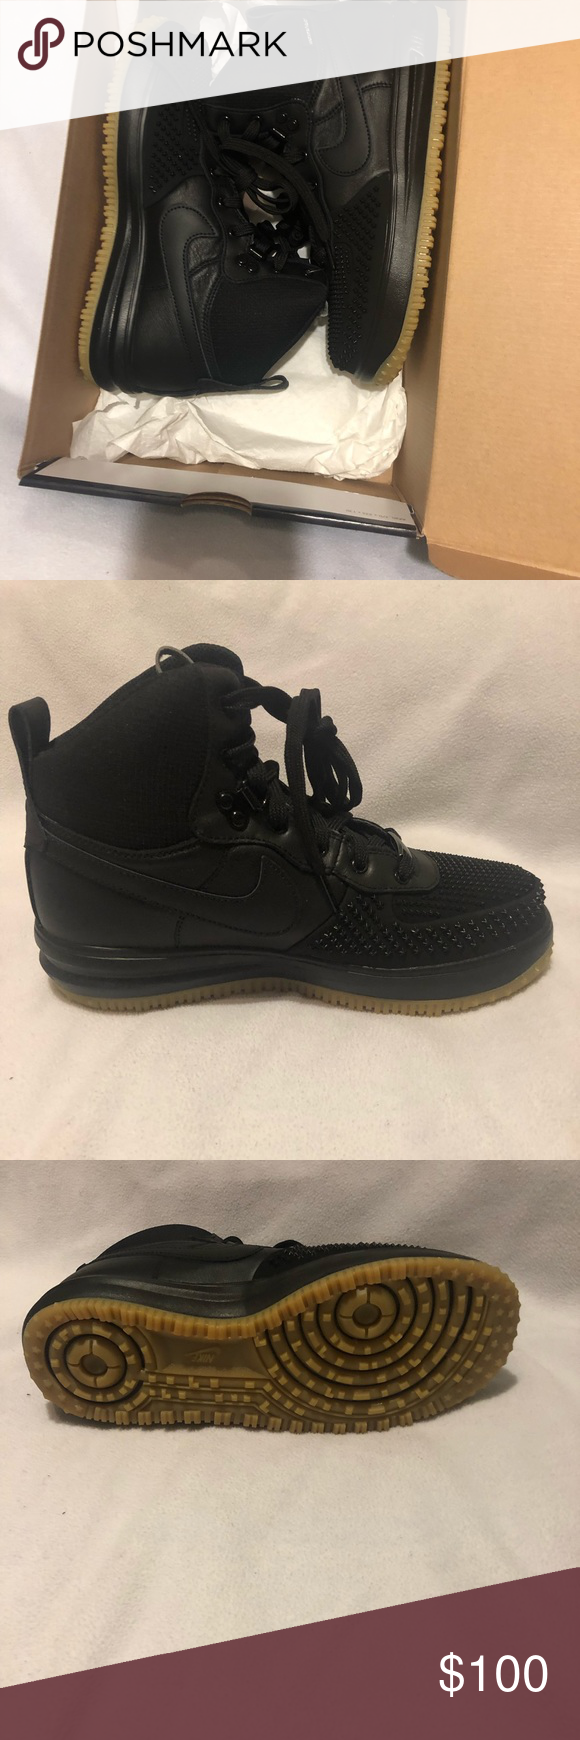 online store 6912b 673dd Nike Air Force 1 s This is a pair of brand new Nike Lunar Force 1 DuckBoot